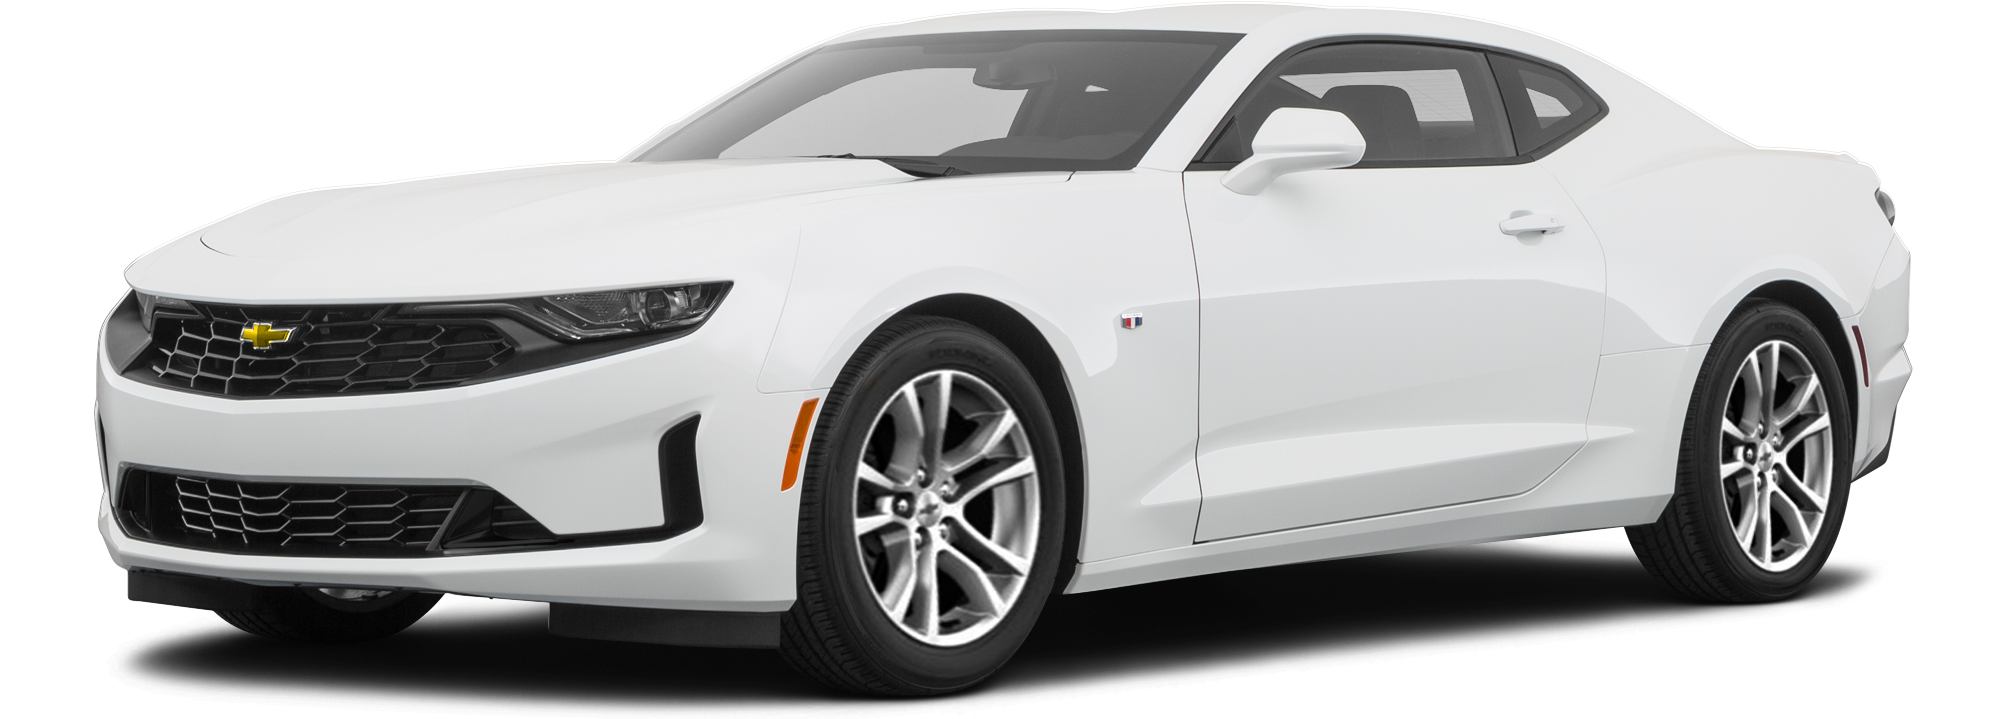 2019 Chevrolet Camaro Incentives, Specials & Offers in Butler PA